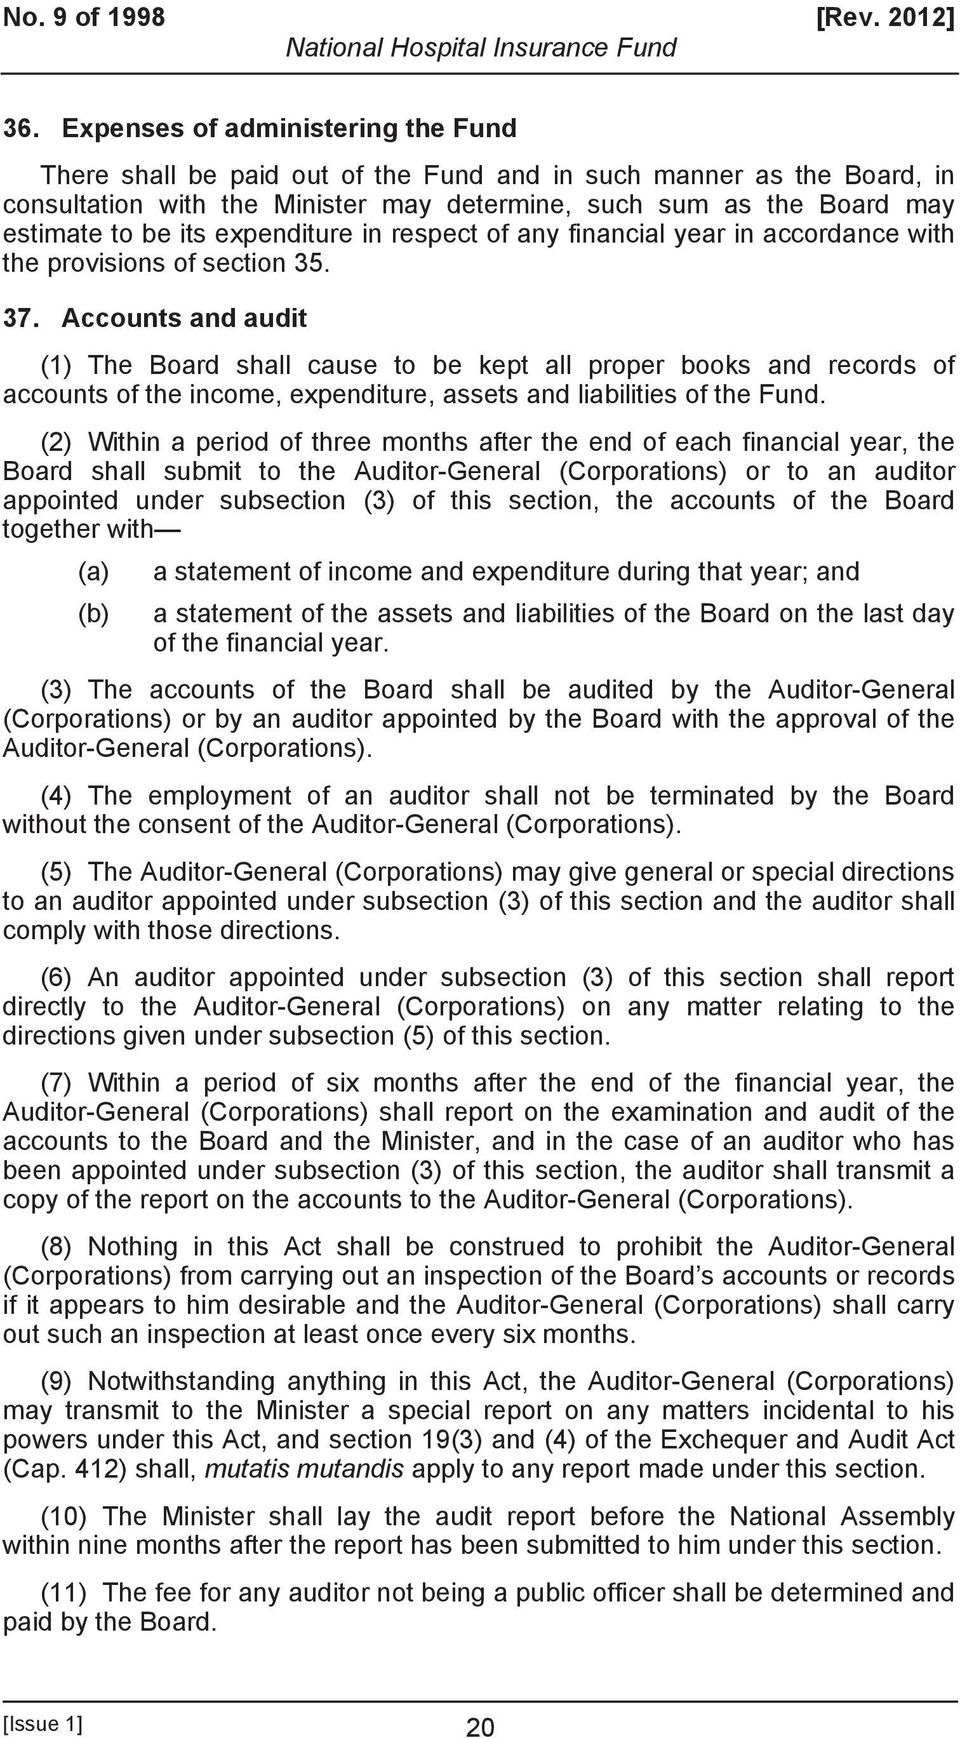 expenditure in respect of any financial year in accordance with the provisions of section 35. 37.